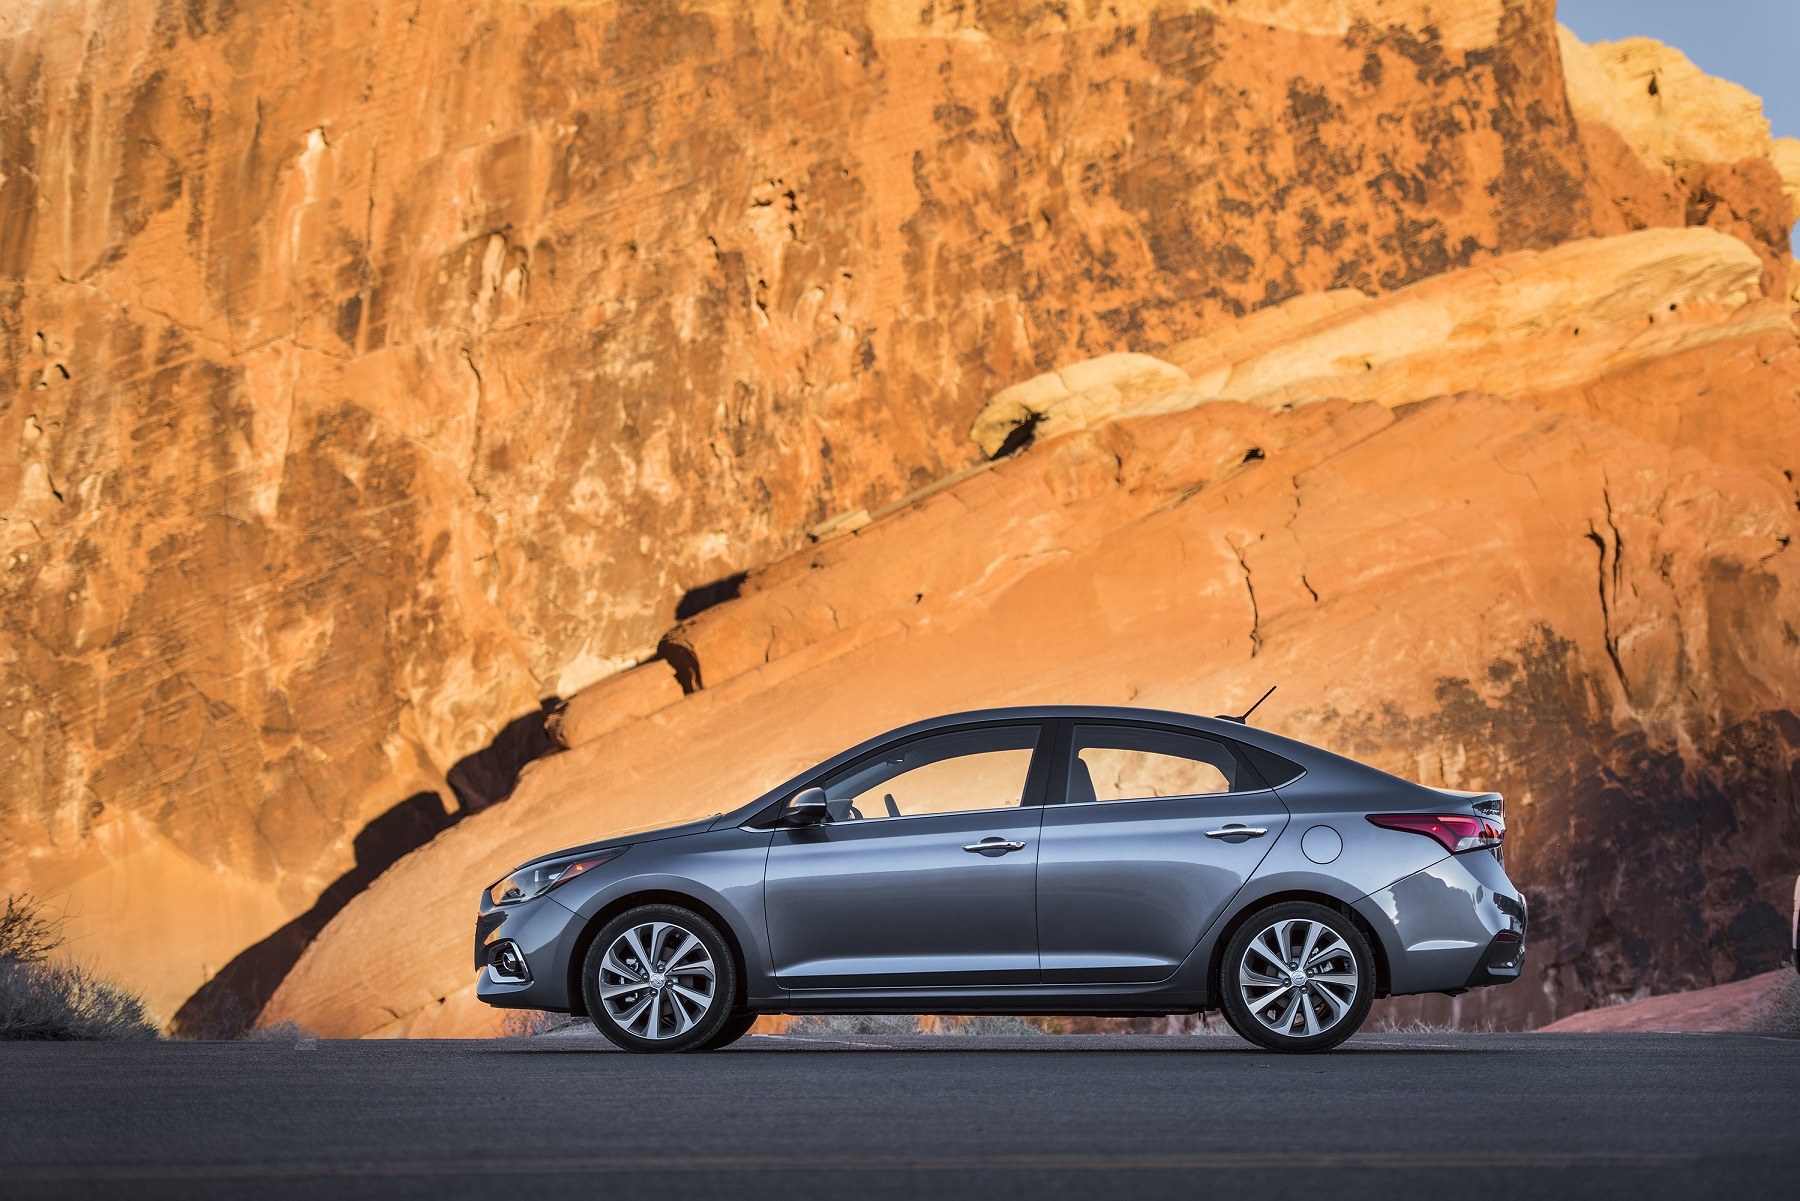 Manufacturer photo: The all-new 2018 Accent builds on the strengths of its predecessors with Hyundai's modern engineering prowess